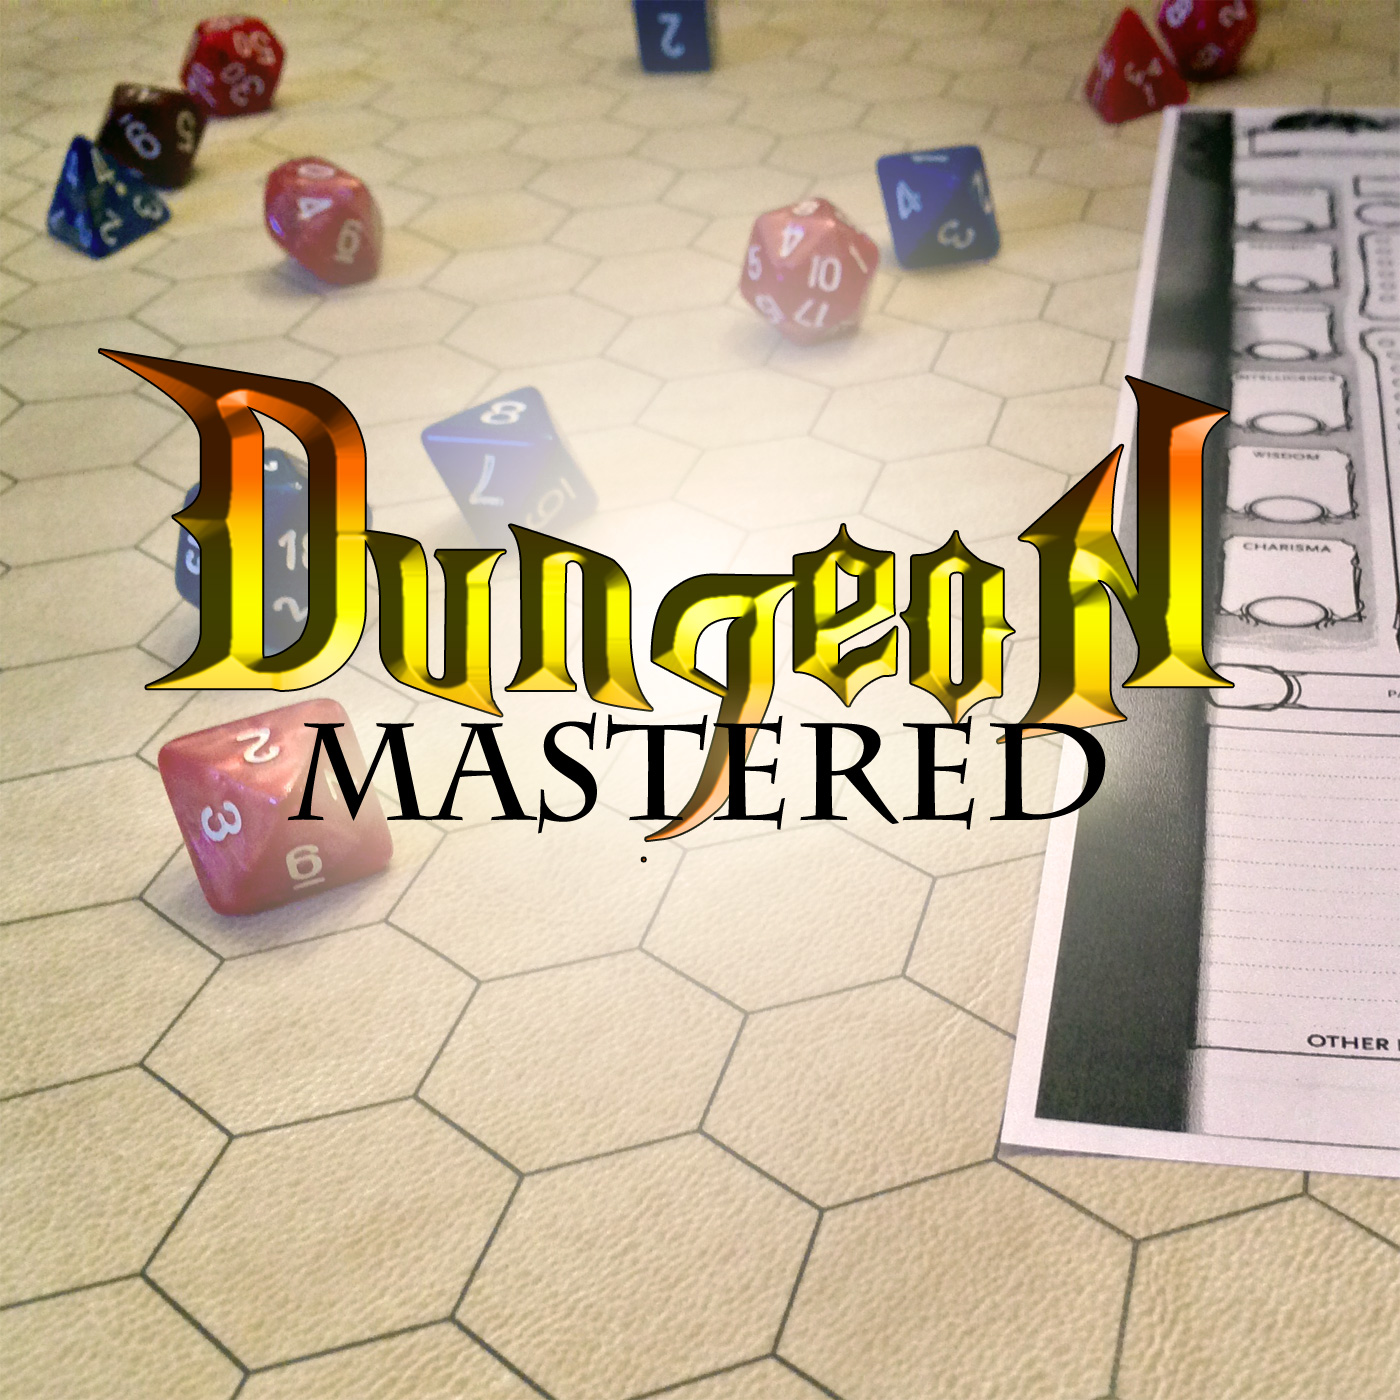 Dungeon Mastered